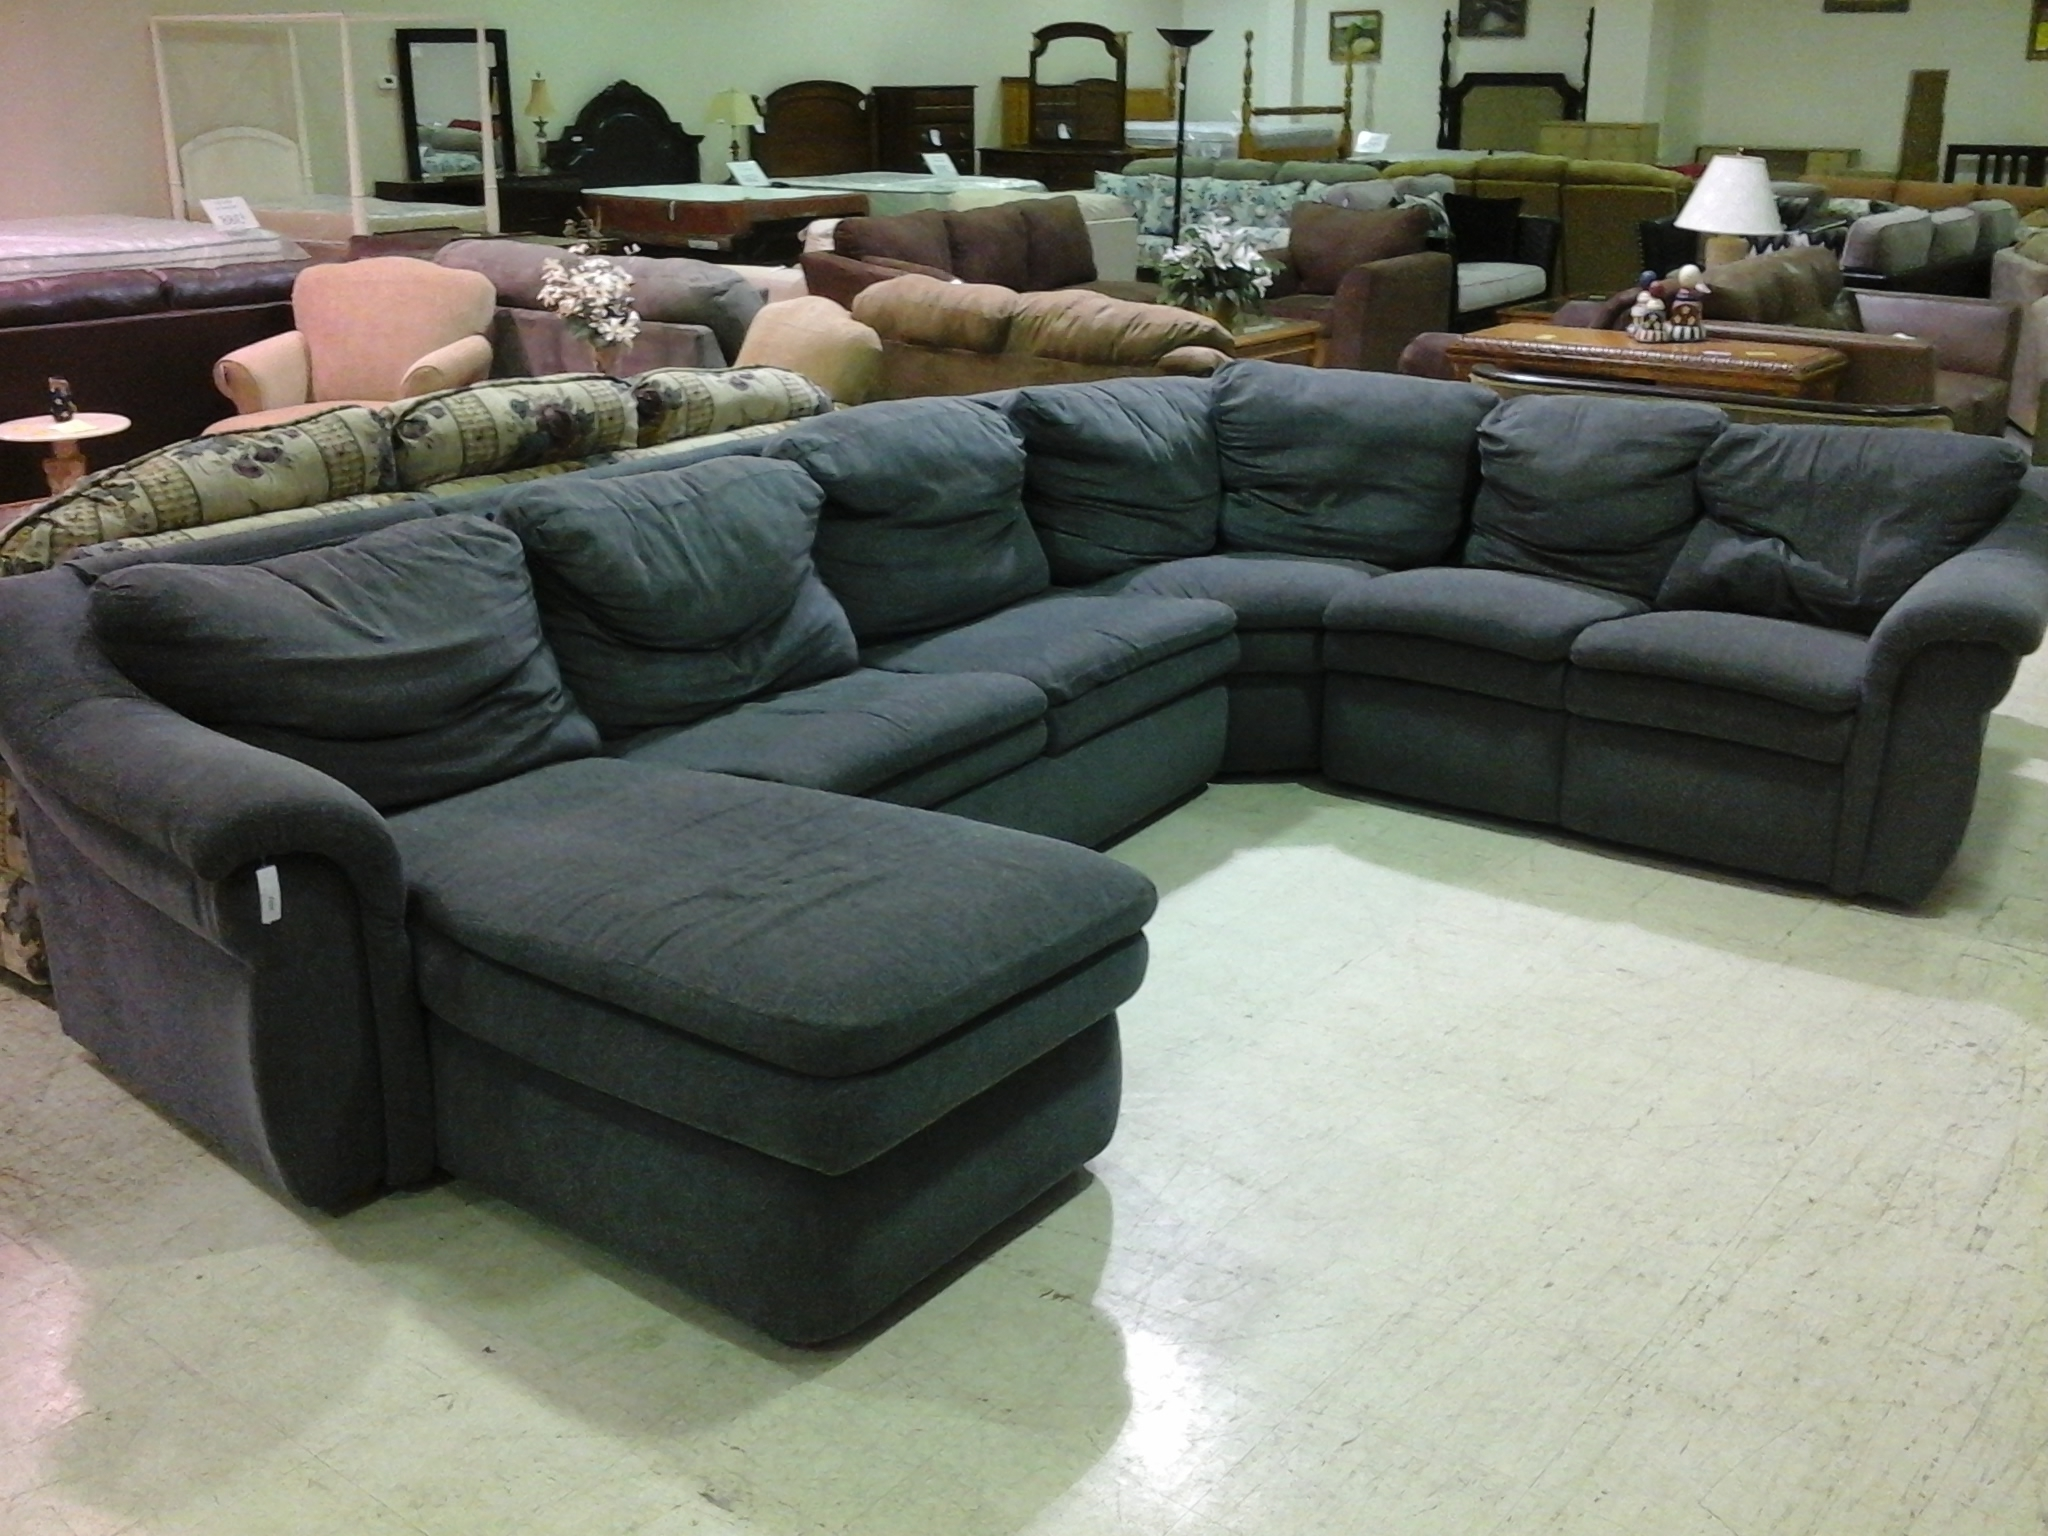 Pinterest With Regard To Sectional Sofas At Lazy Boy (View 6 of 20)